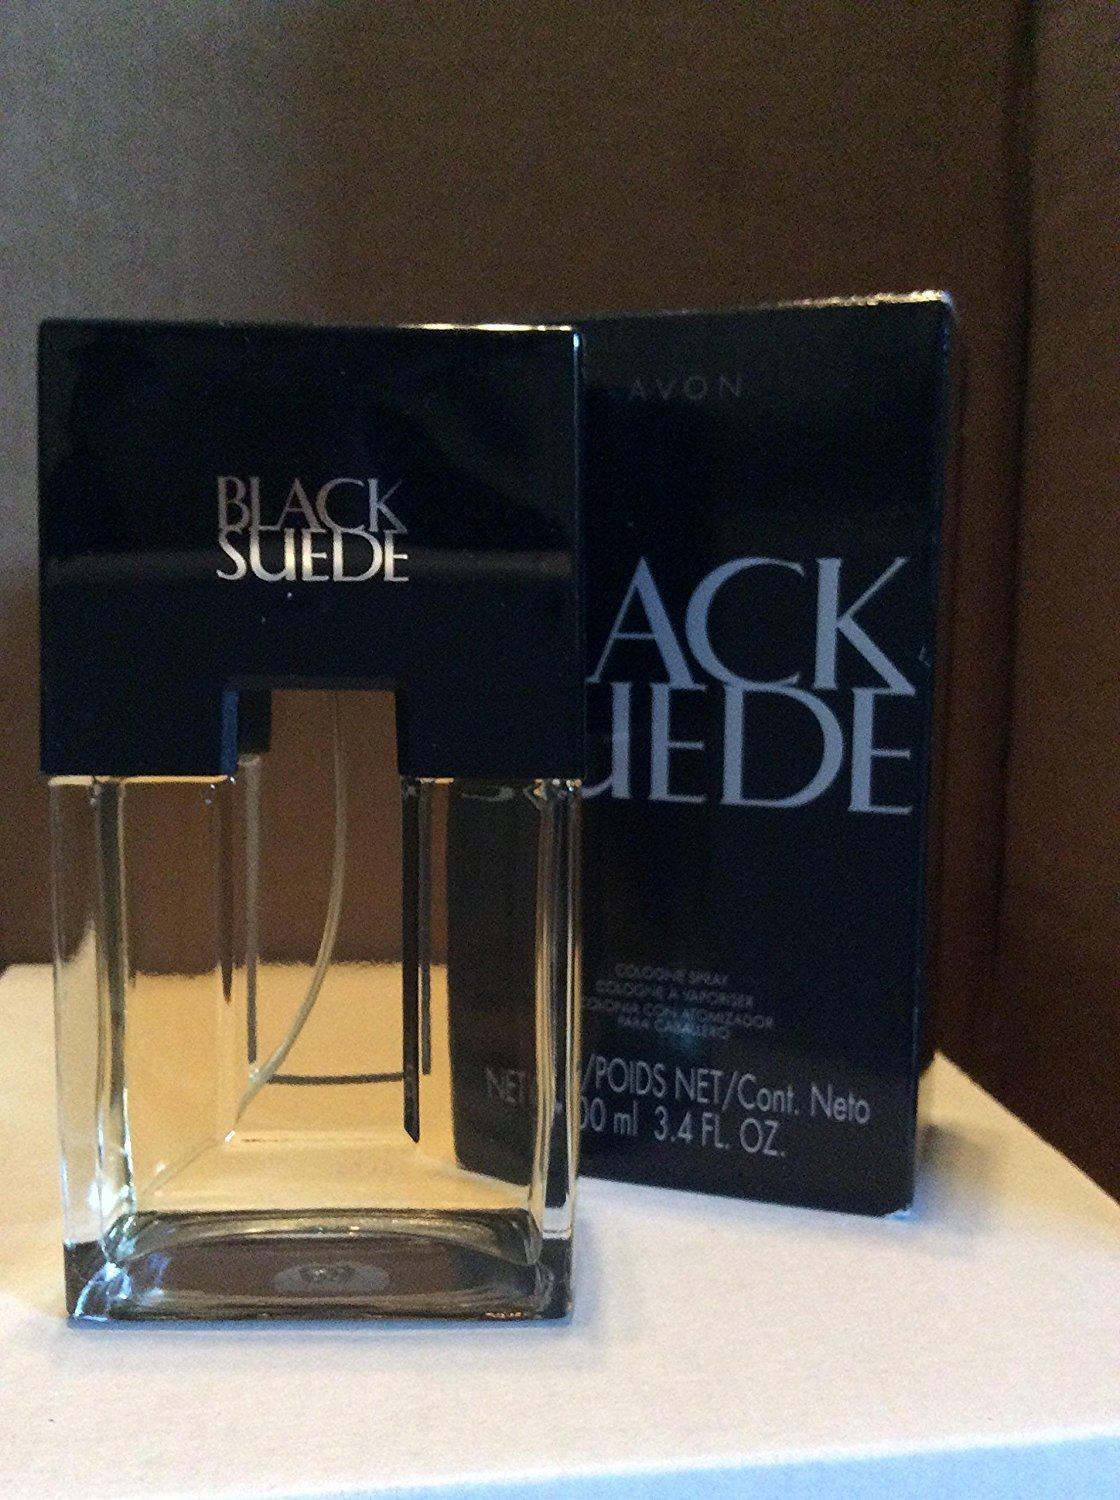 Black Suede For Men by Avon Eau de Toilette Spray 3.4 oz